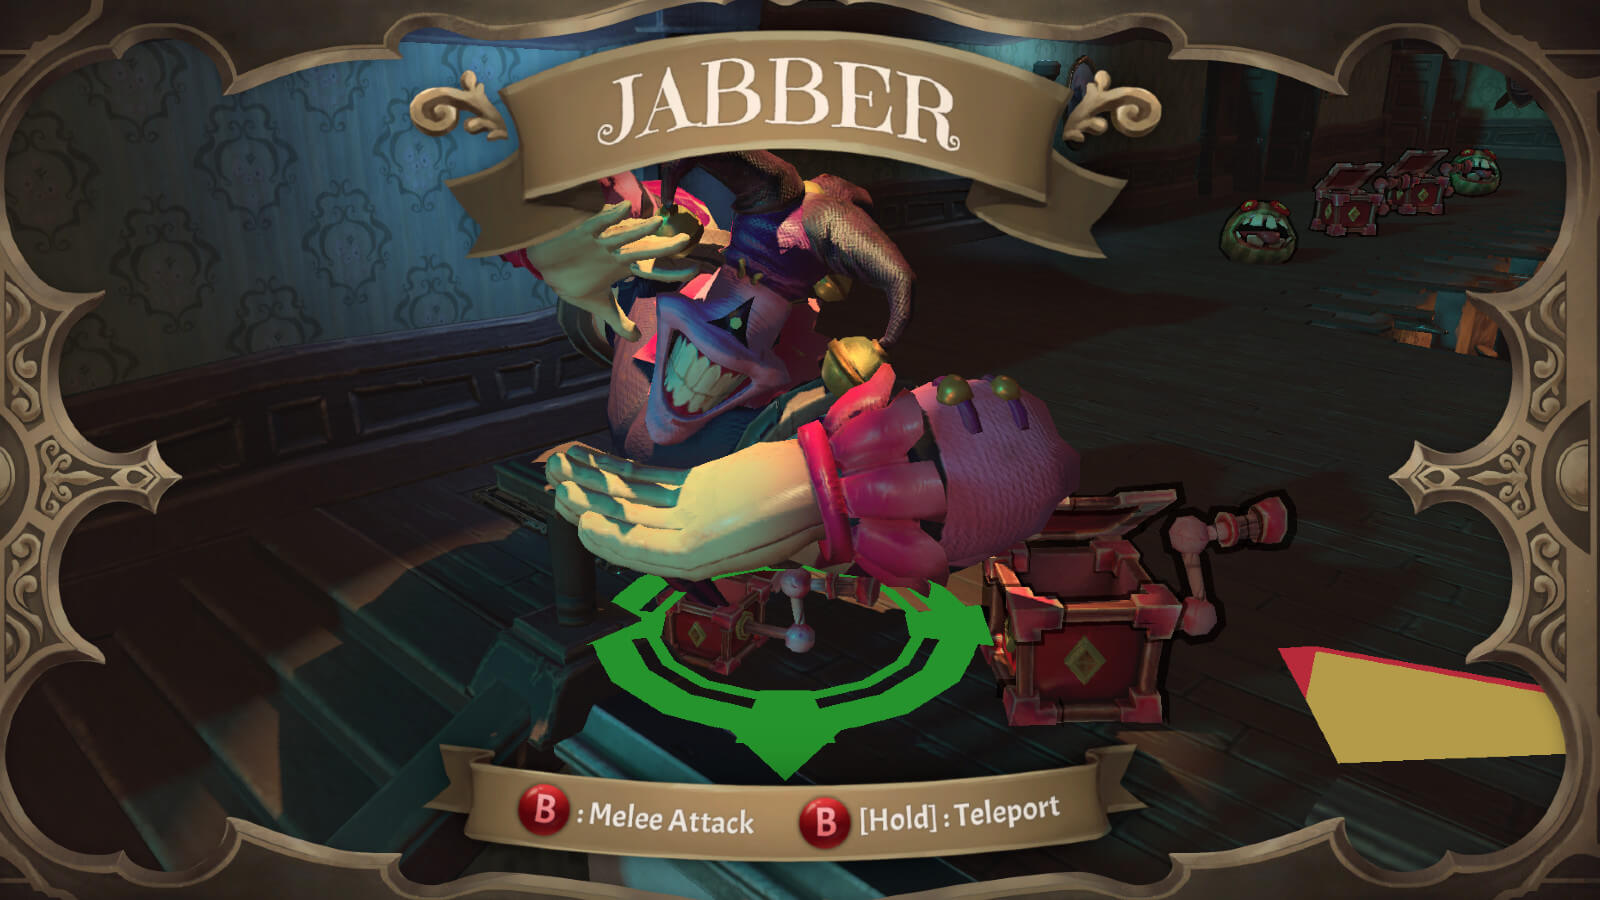 Character screen showing the jester named Jabber coming out of a music box